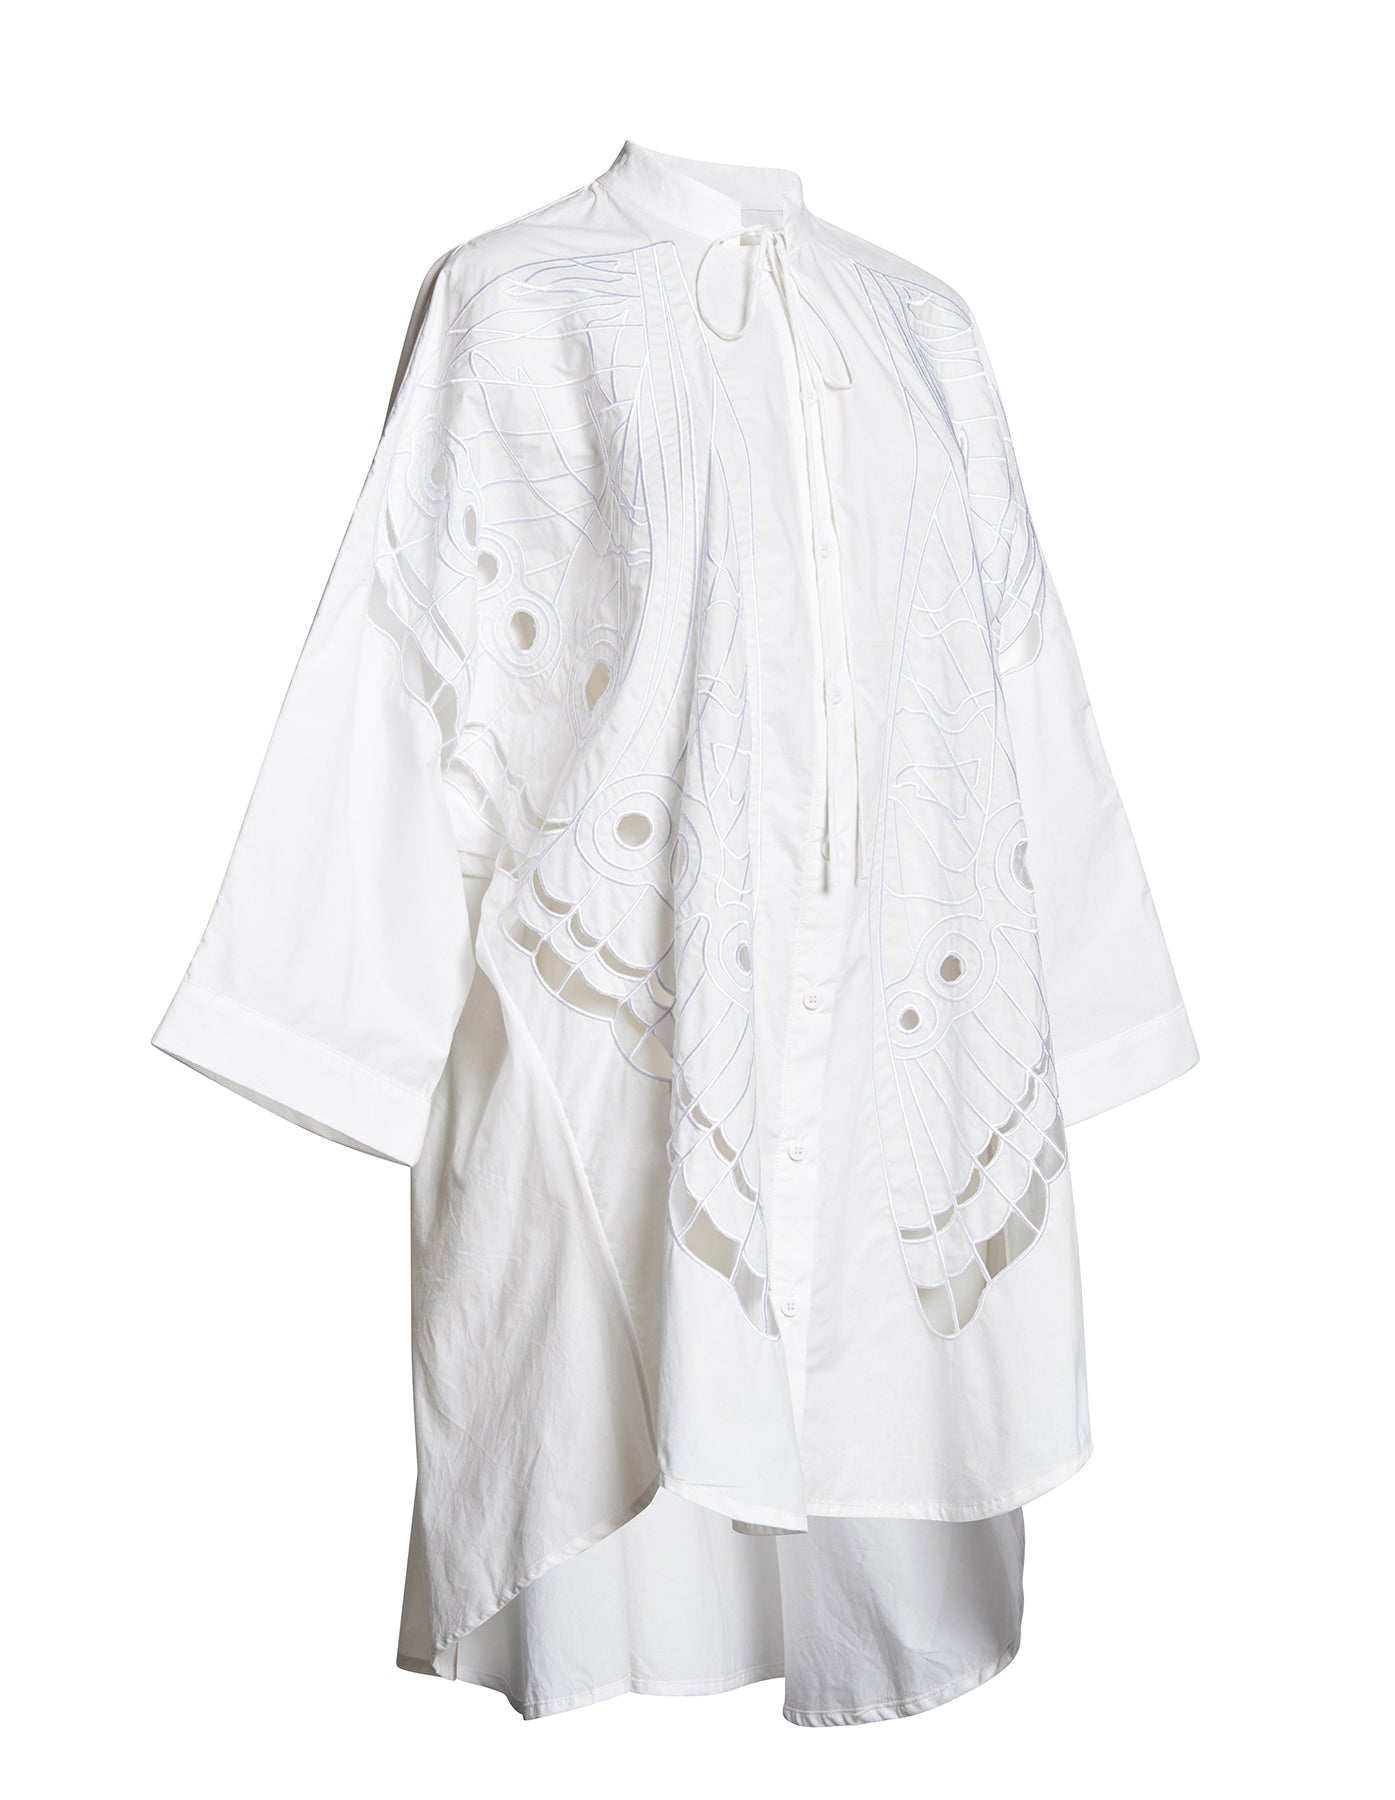 BRODERIE BUTTERFLY SHIRT DRESS